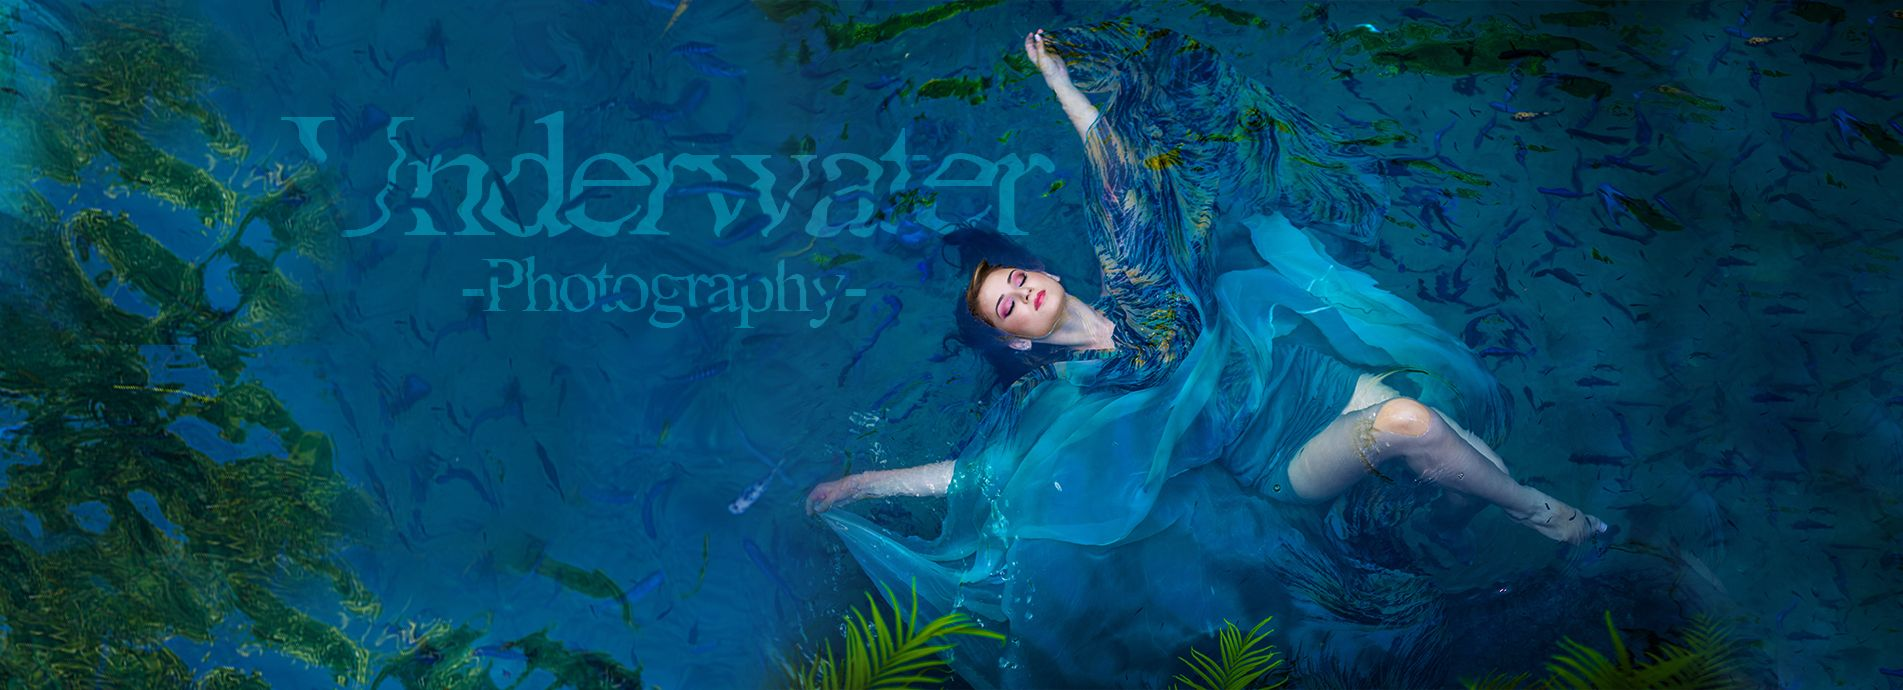 quinceanera photography untherwater themes